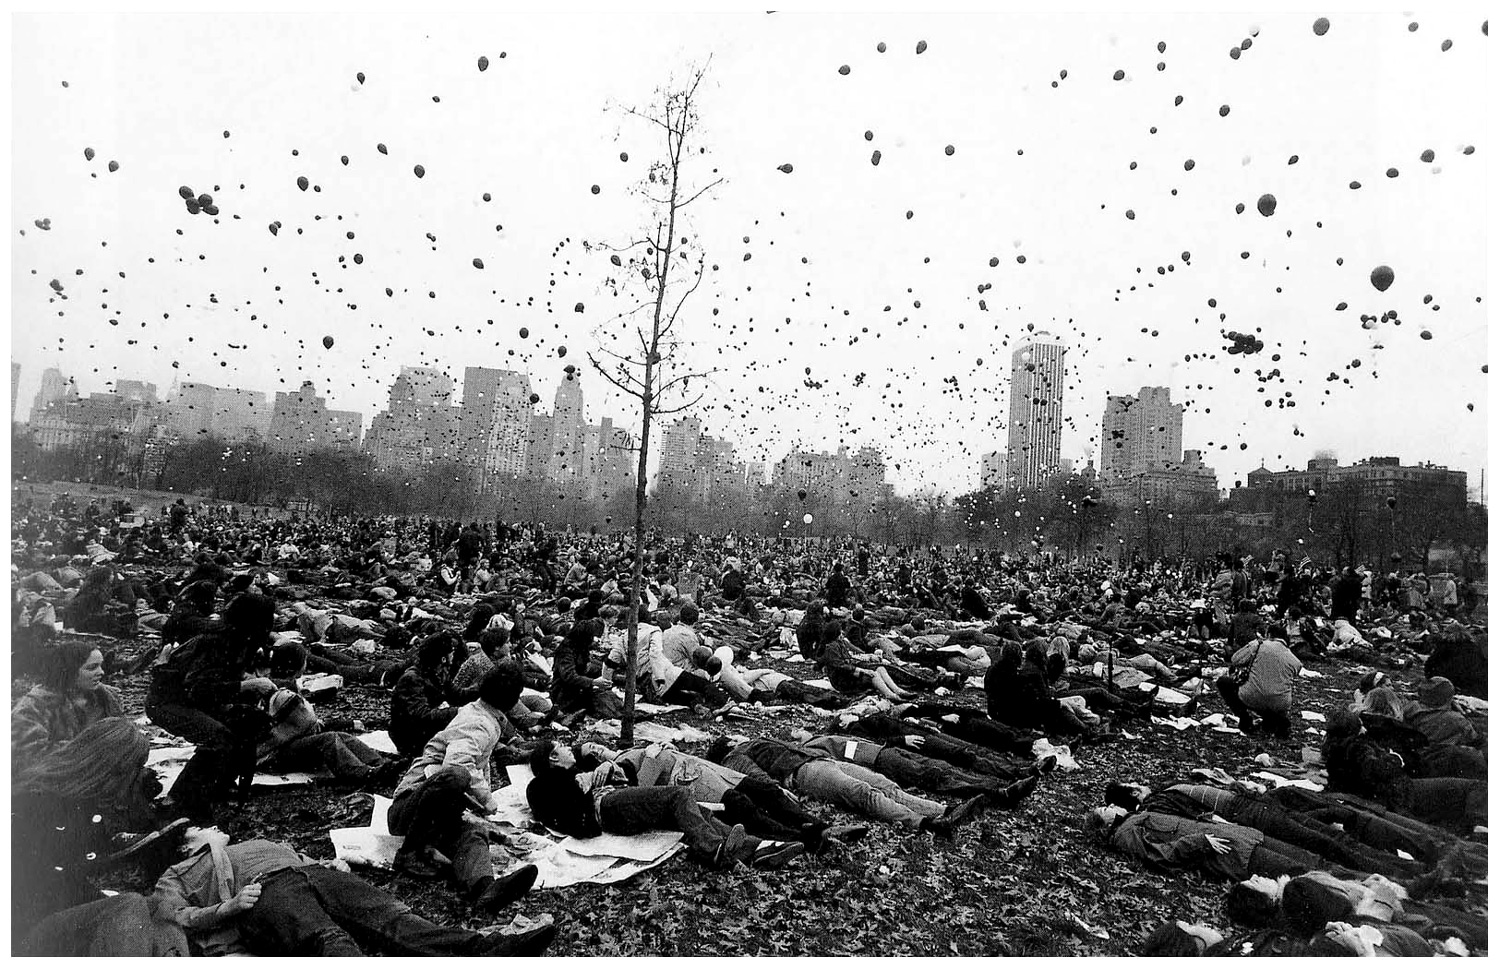 Garry Winogrand      Peace Demonstration, Central Park, New York  1970 gelatin silver print 11 x 14 inches (28 x 35.6 cm) estate stamped by executor of Winogrand estate